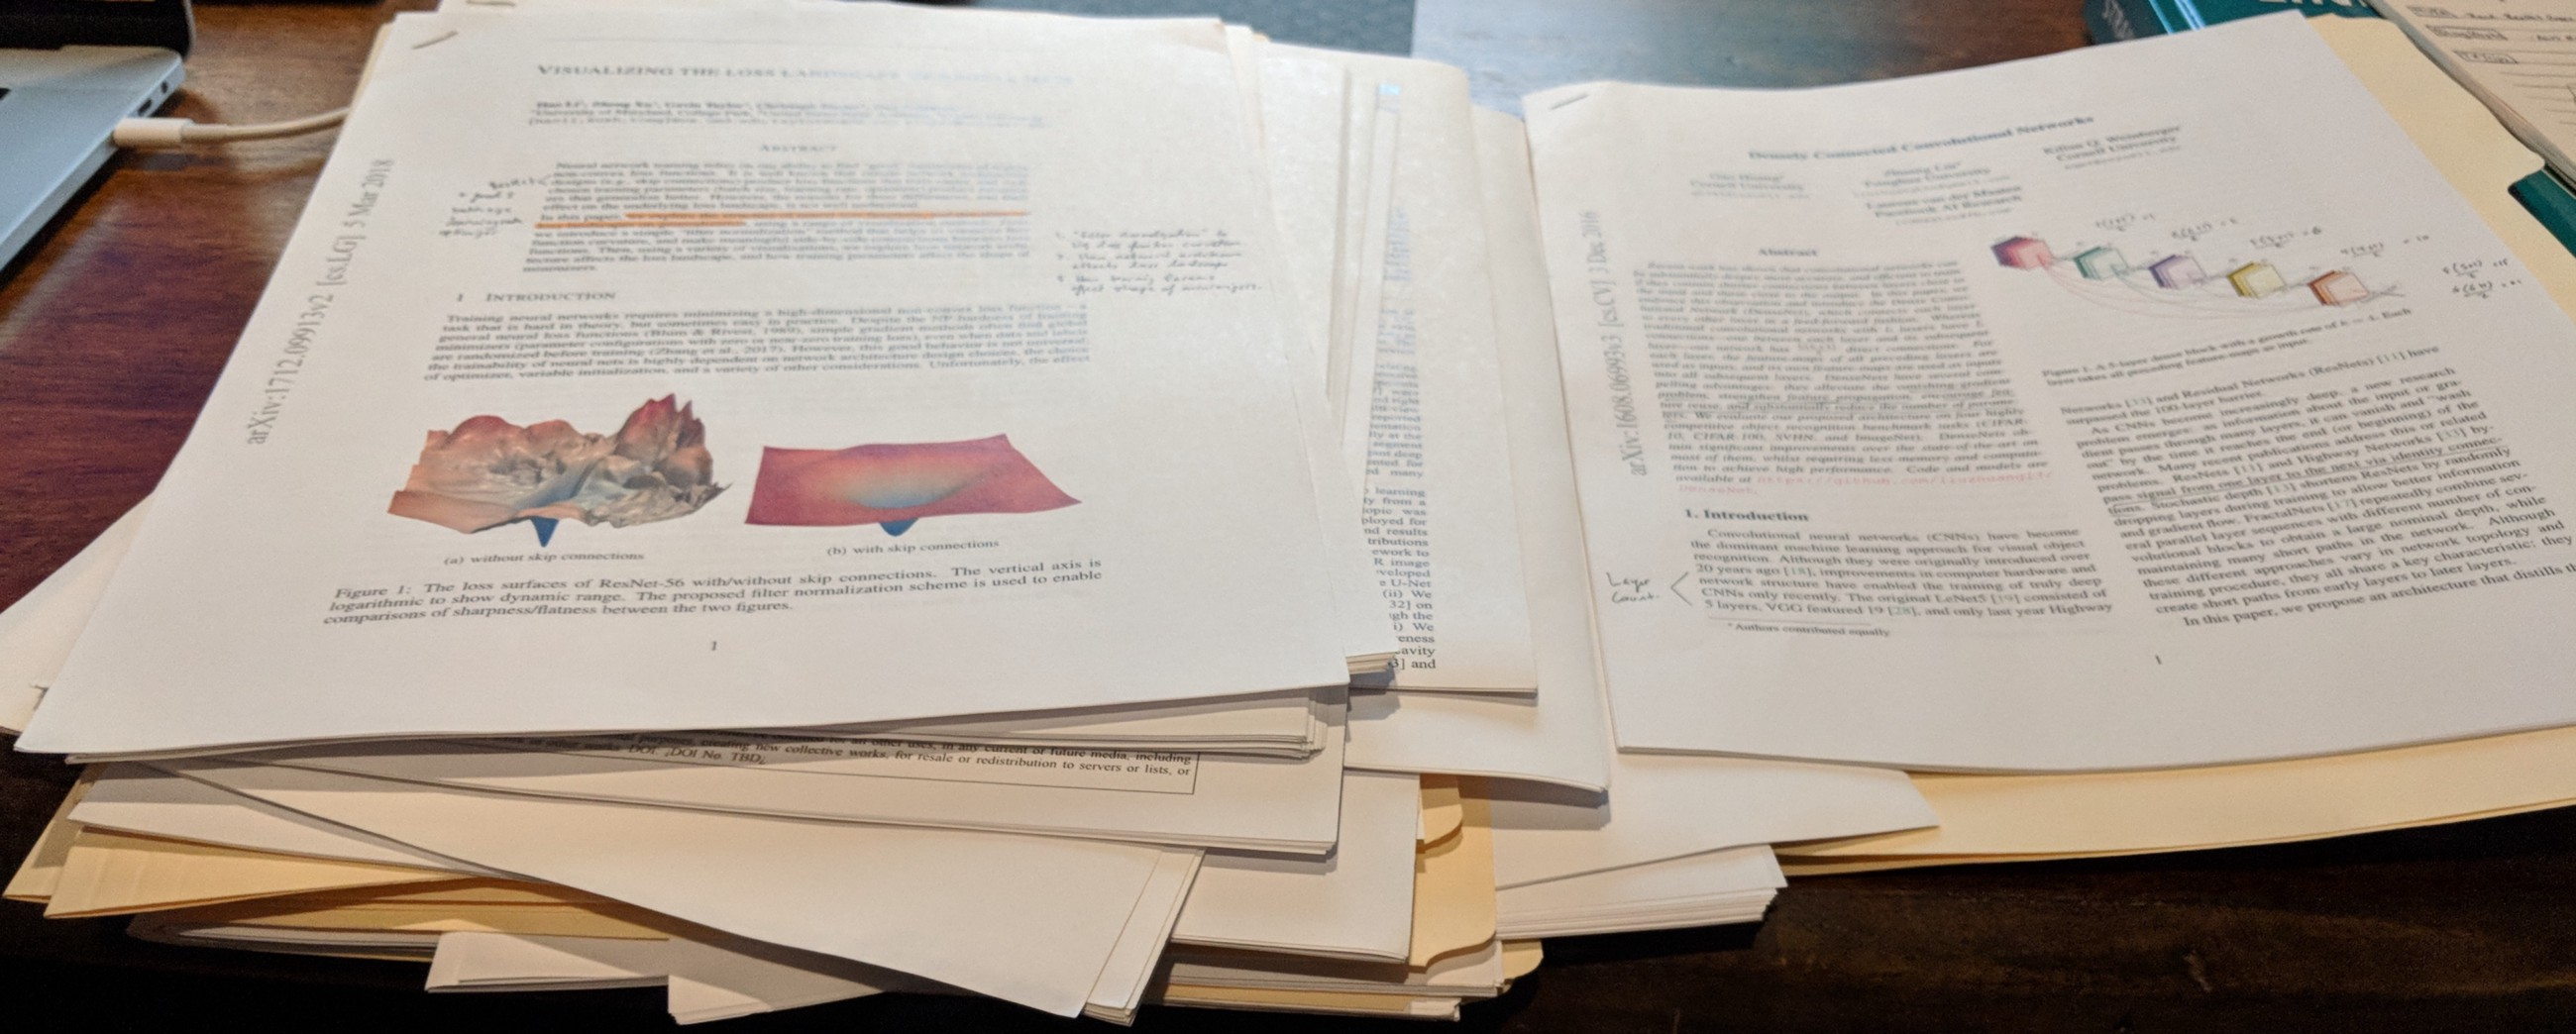 Research papers 4 sale